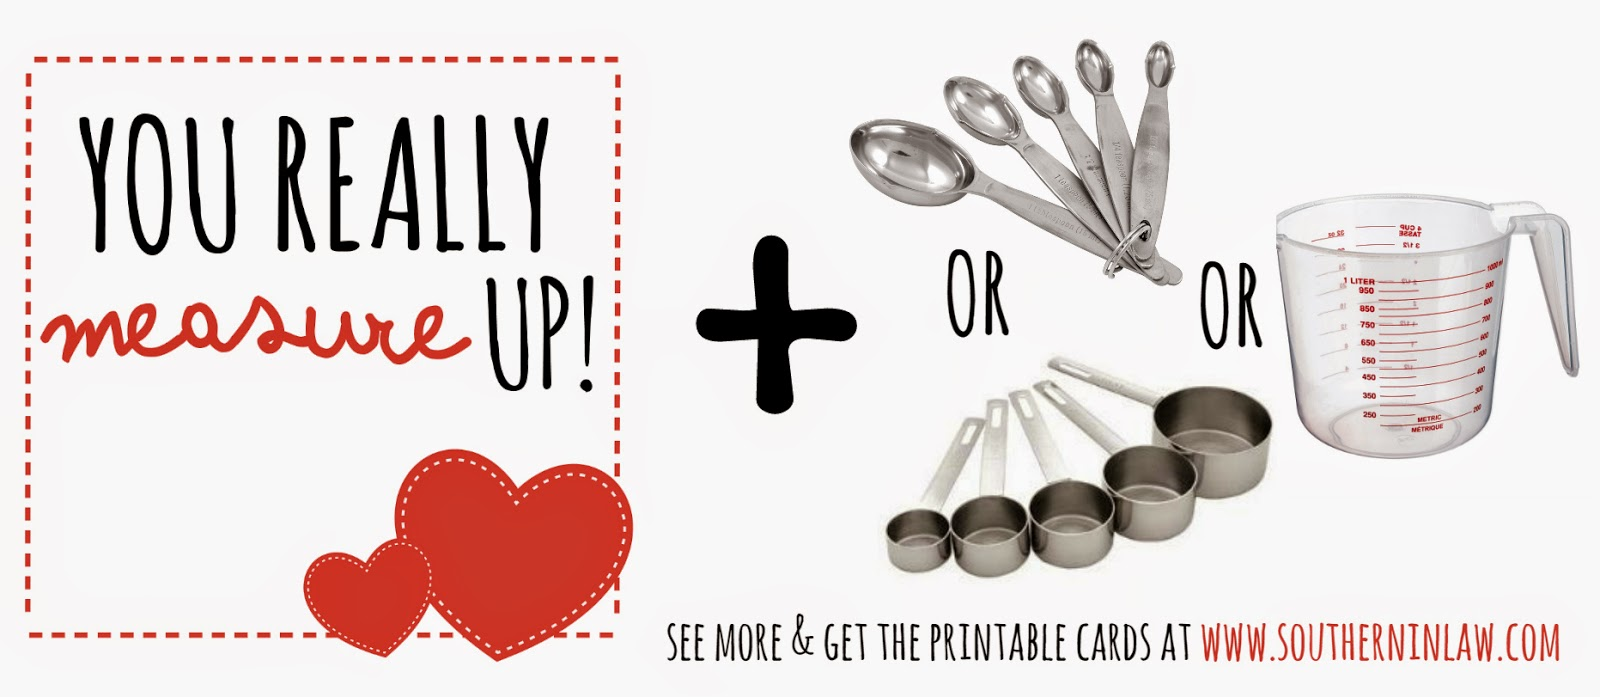 You really measure up - Valentines Gift Ideas for Bakers - Punny Valentines Gift Ideas Free Printable Valentines Cards